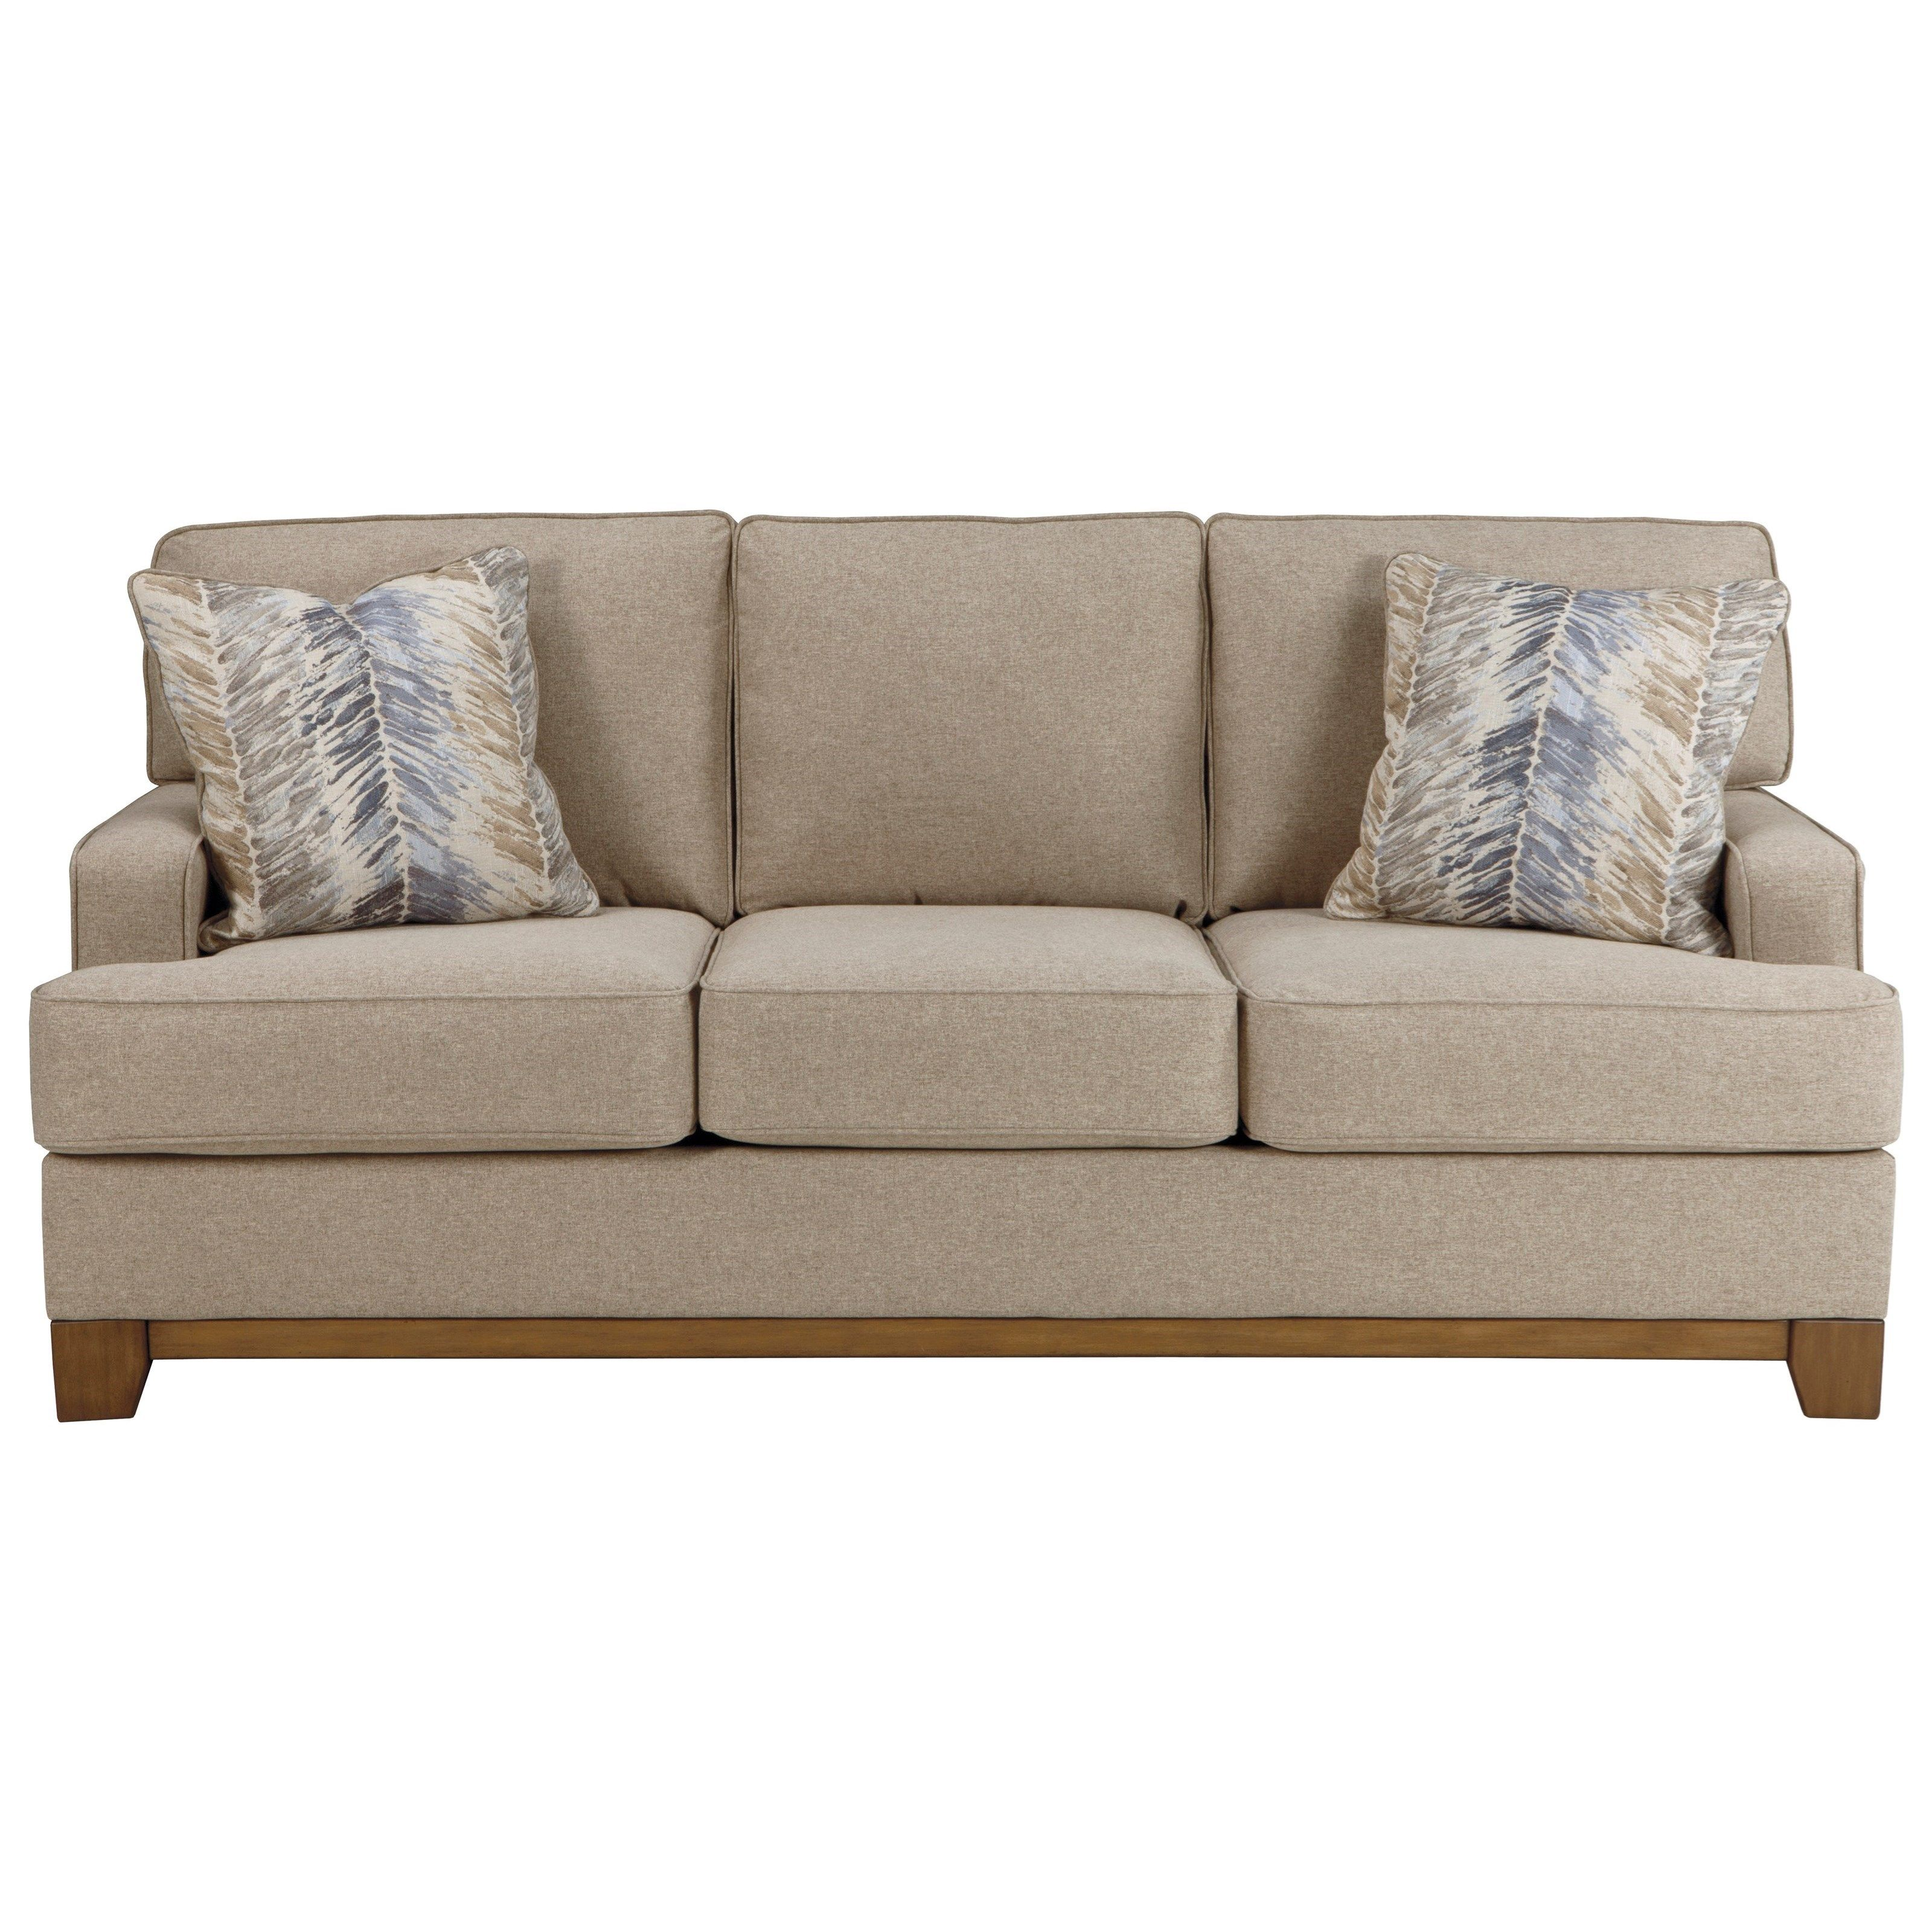 Hillsway Contemporary Sofa With Exposed Wood Front Rail By